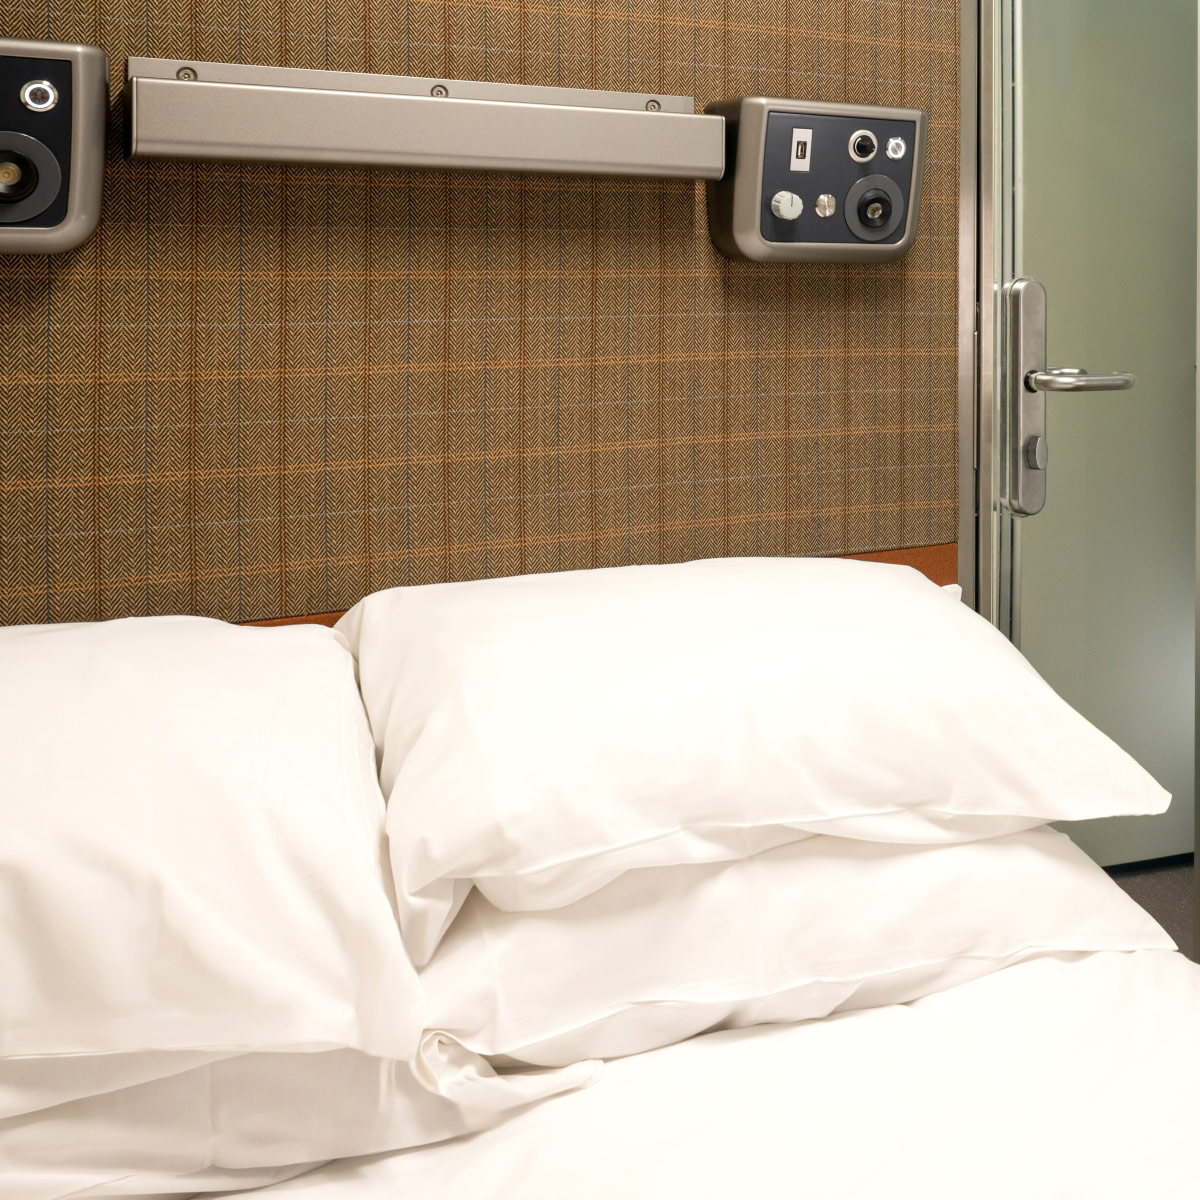 Caledonian Double | Caledonian Sleeper Accommodation